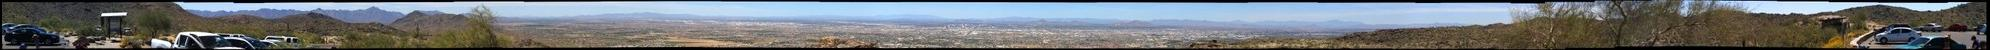 Phoenix, AZ - View from Dobbins Lookout, South Mountain Park